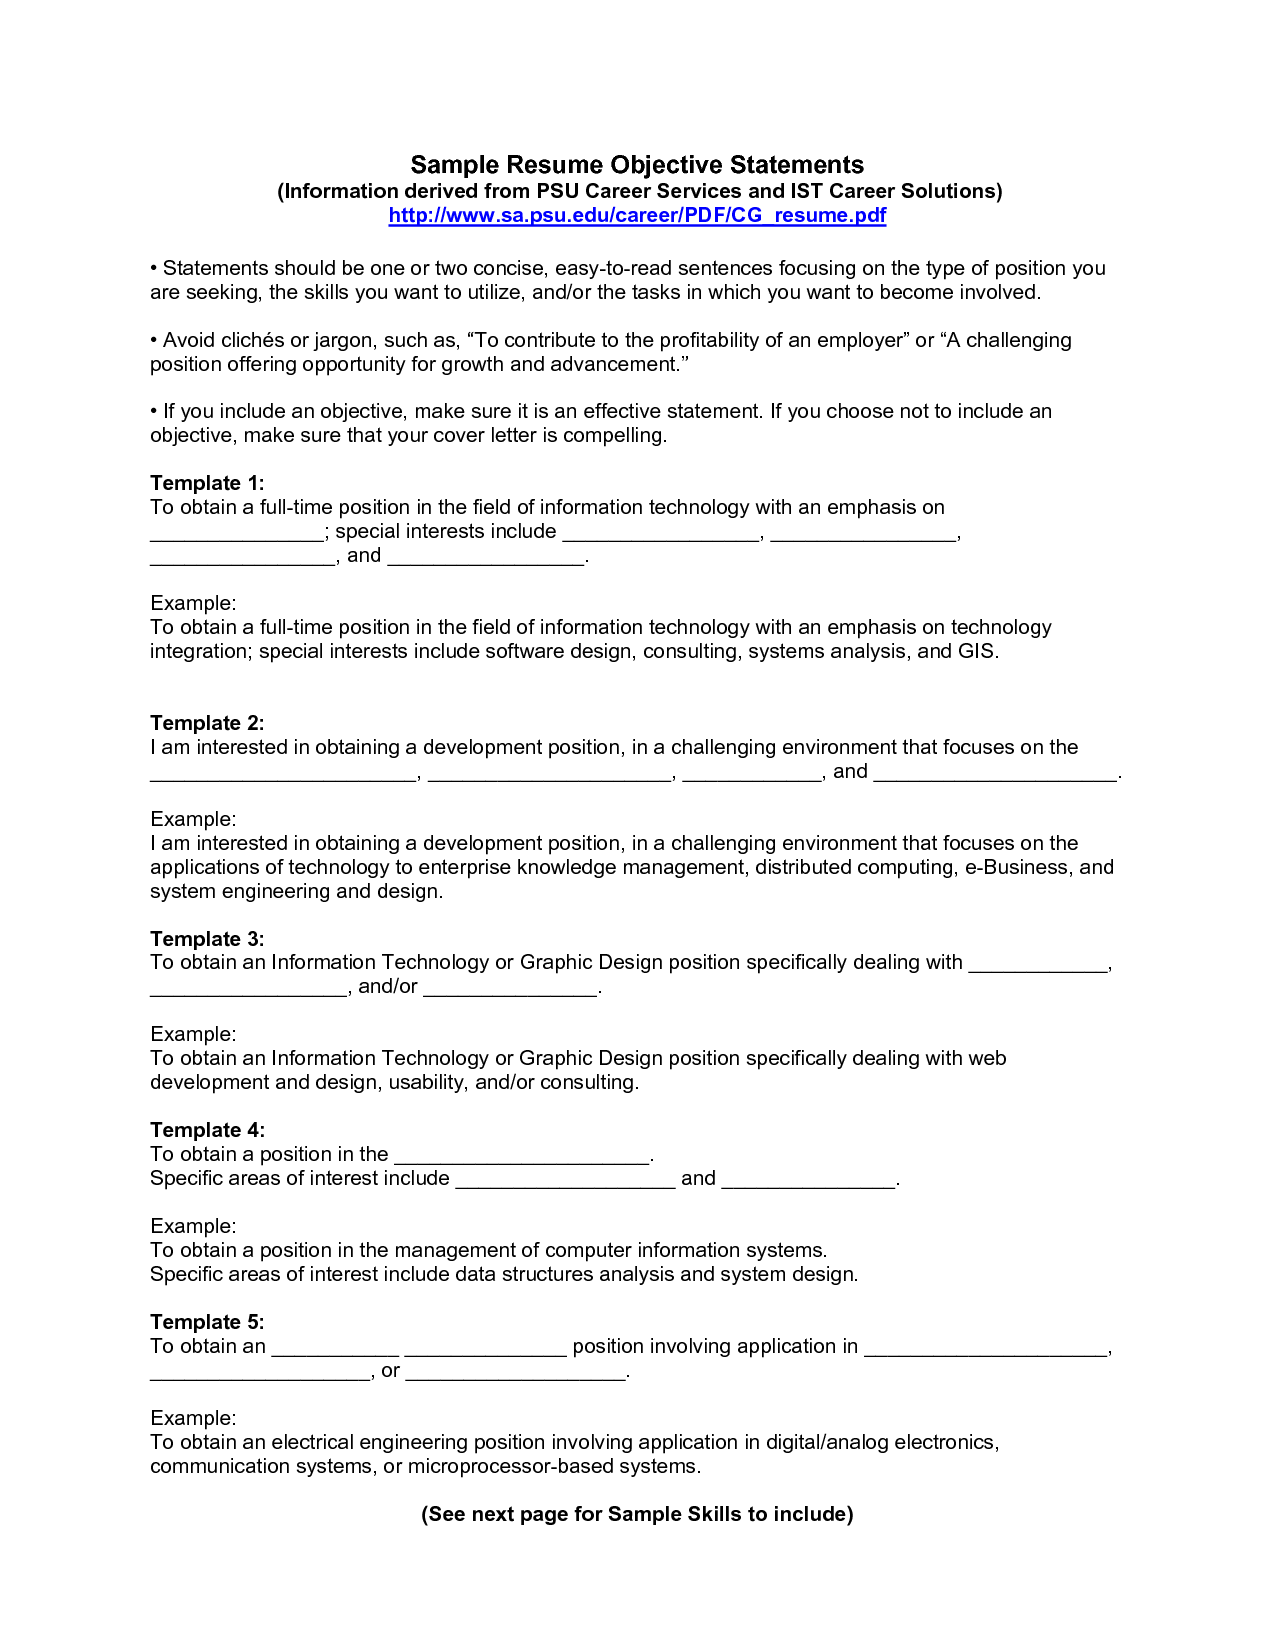 Personal Trainer Resume Objective Examples 10 Sample Resume Objective Statements